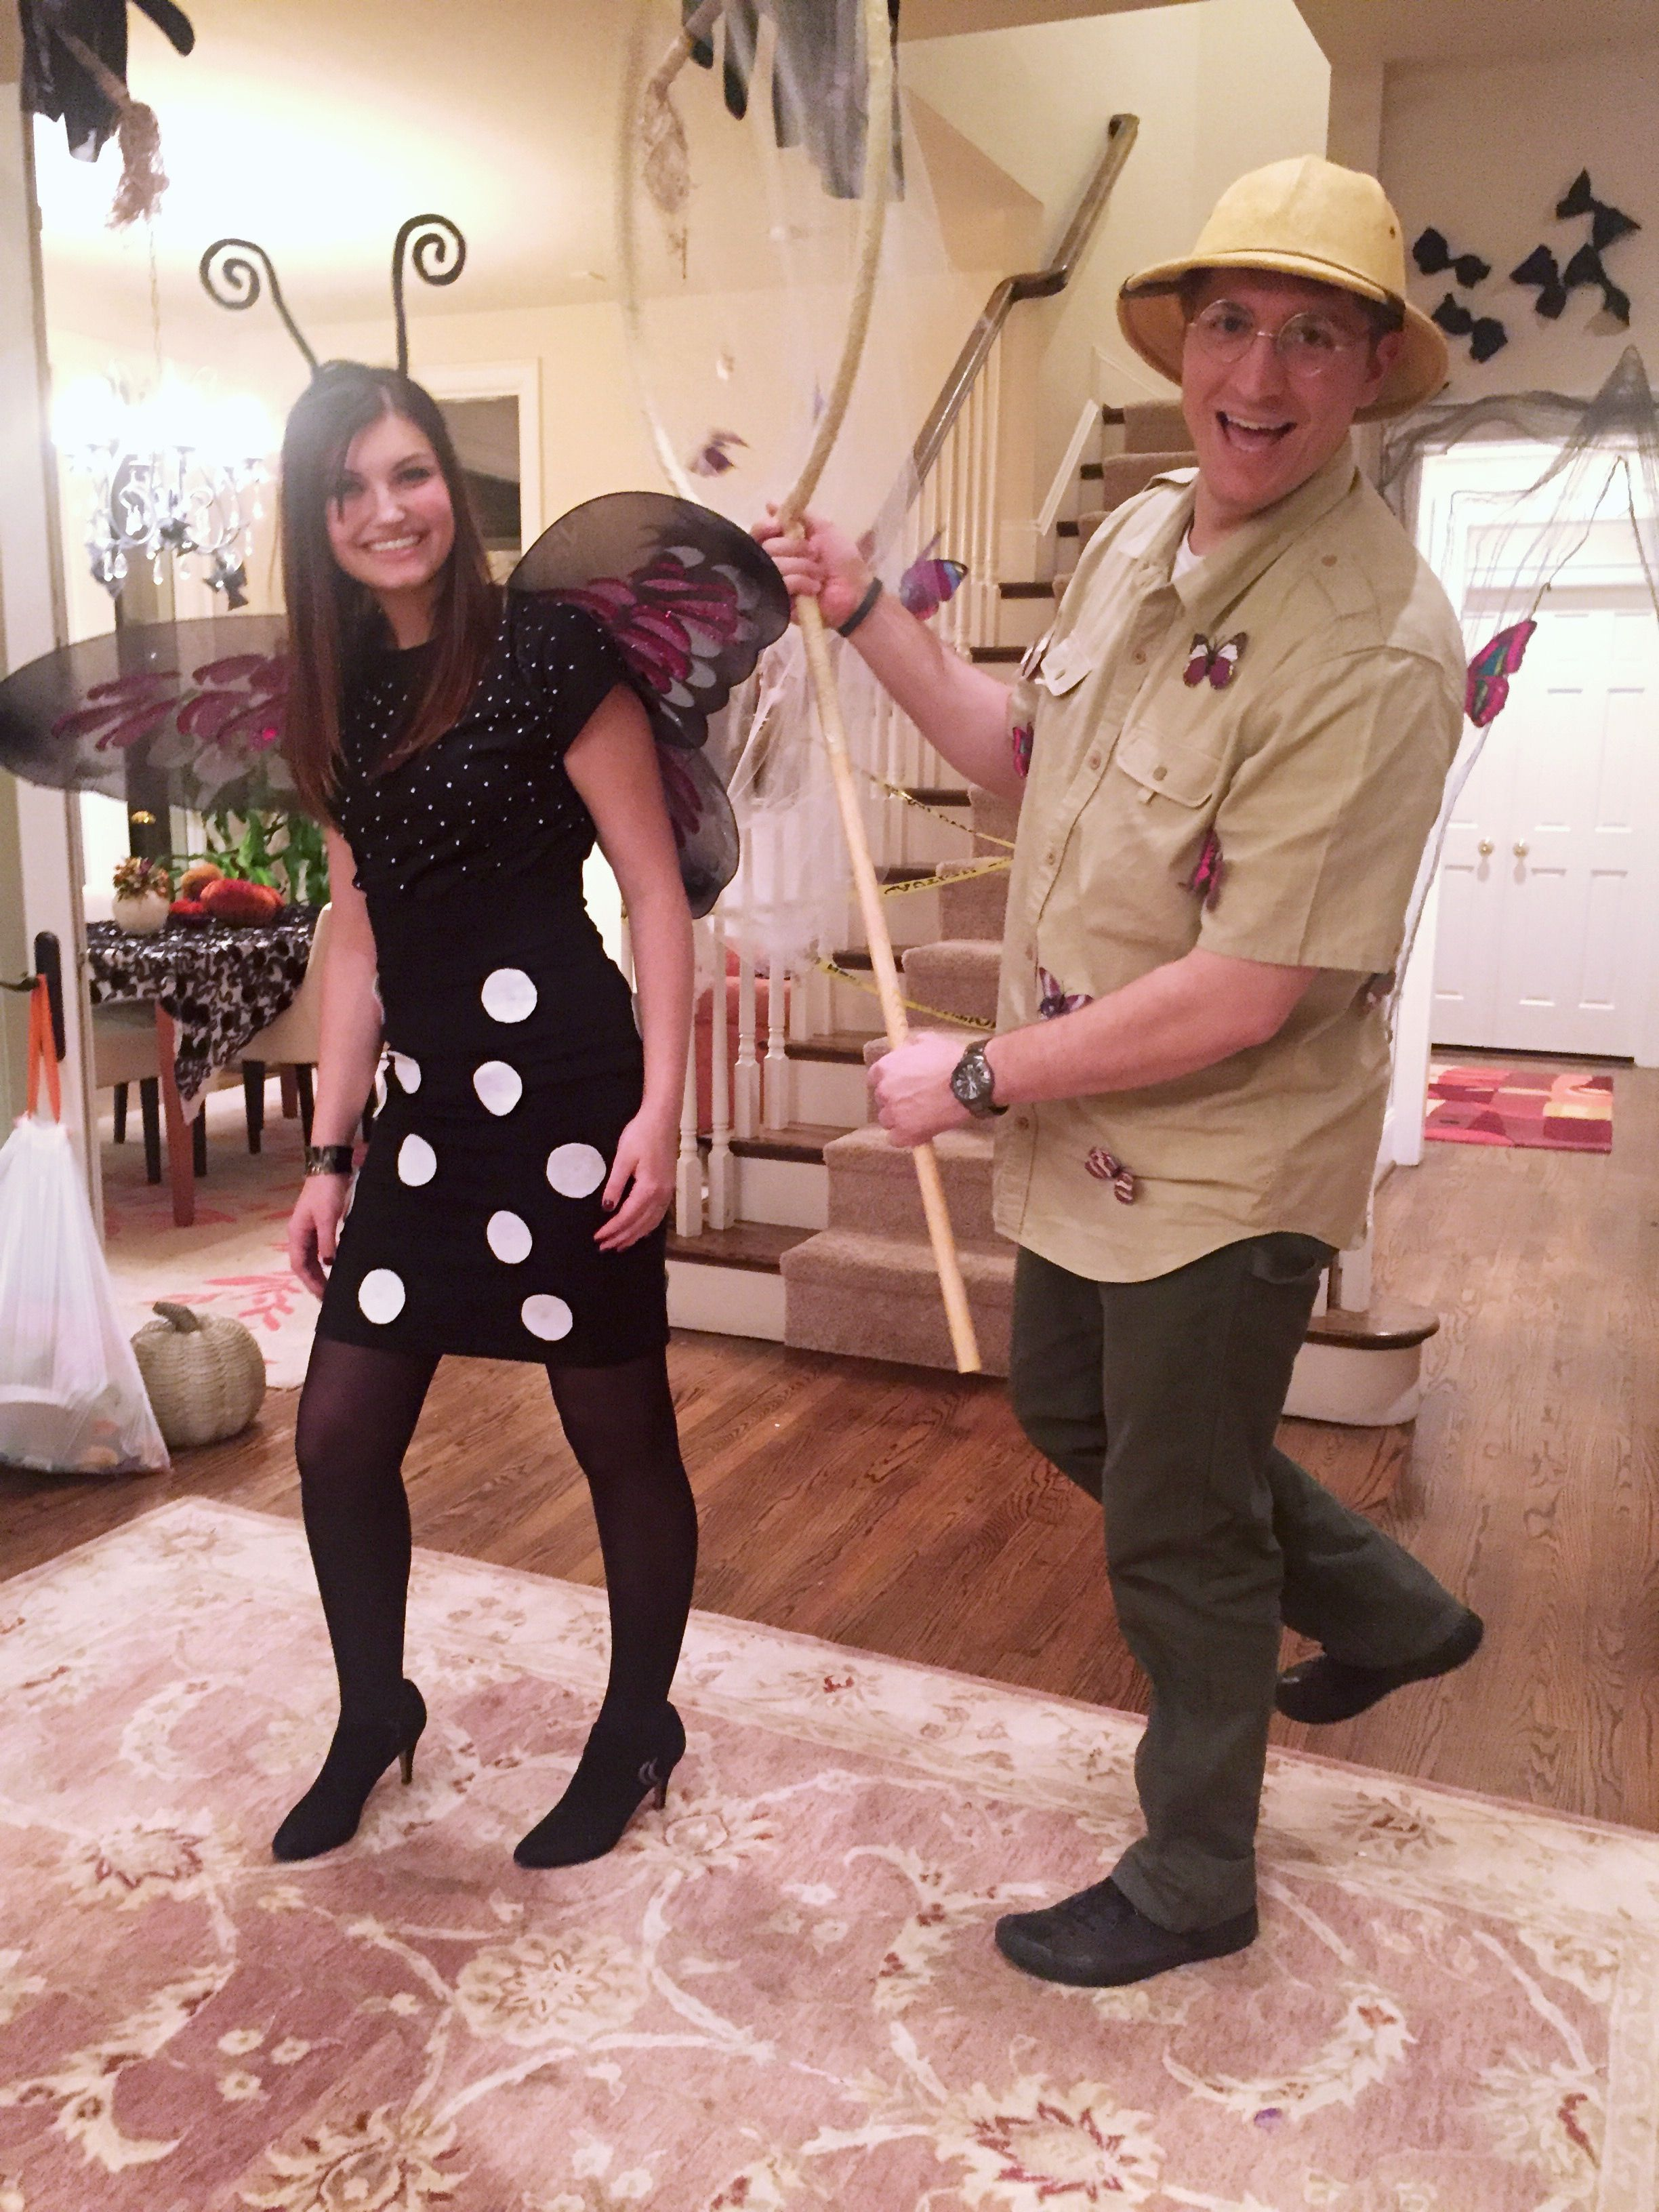 16b2a9020 Couples costume A butterfly and her catcher for Halloween! We used a hula  hoop to create the giant net and hot glued miniature butterflies to it and  his ...